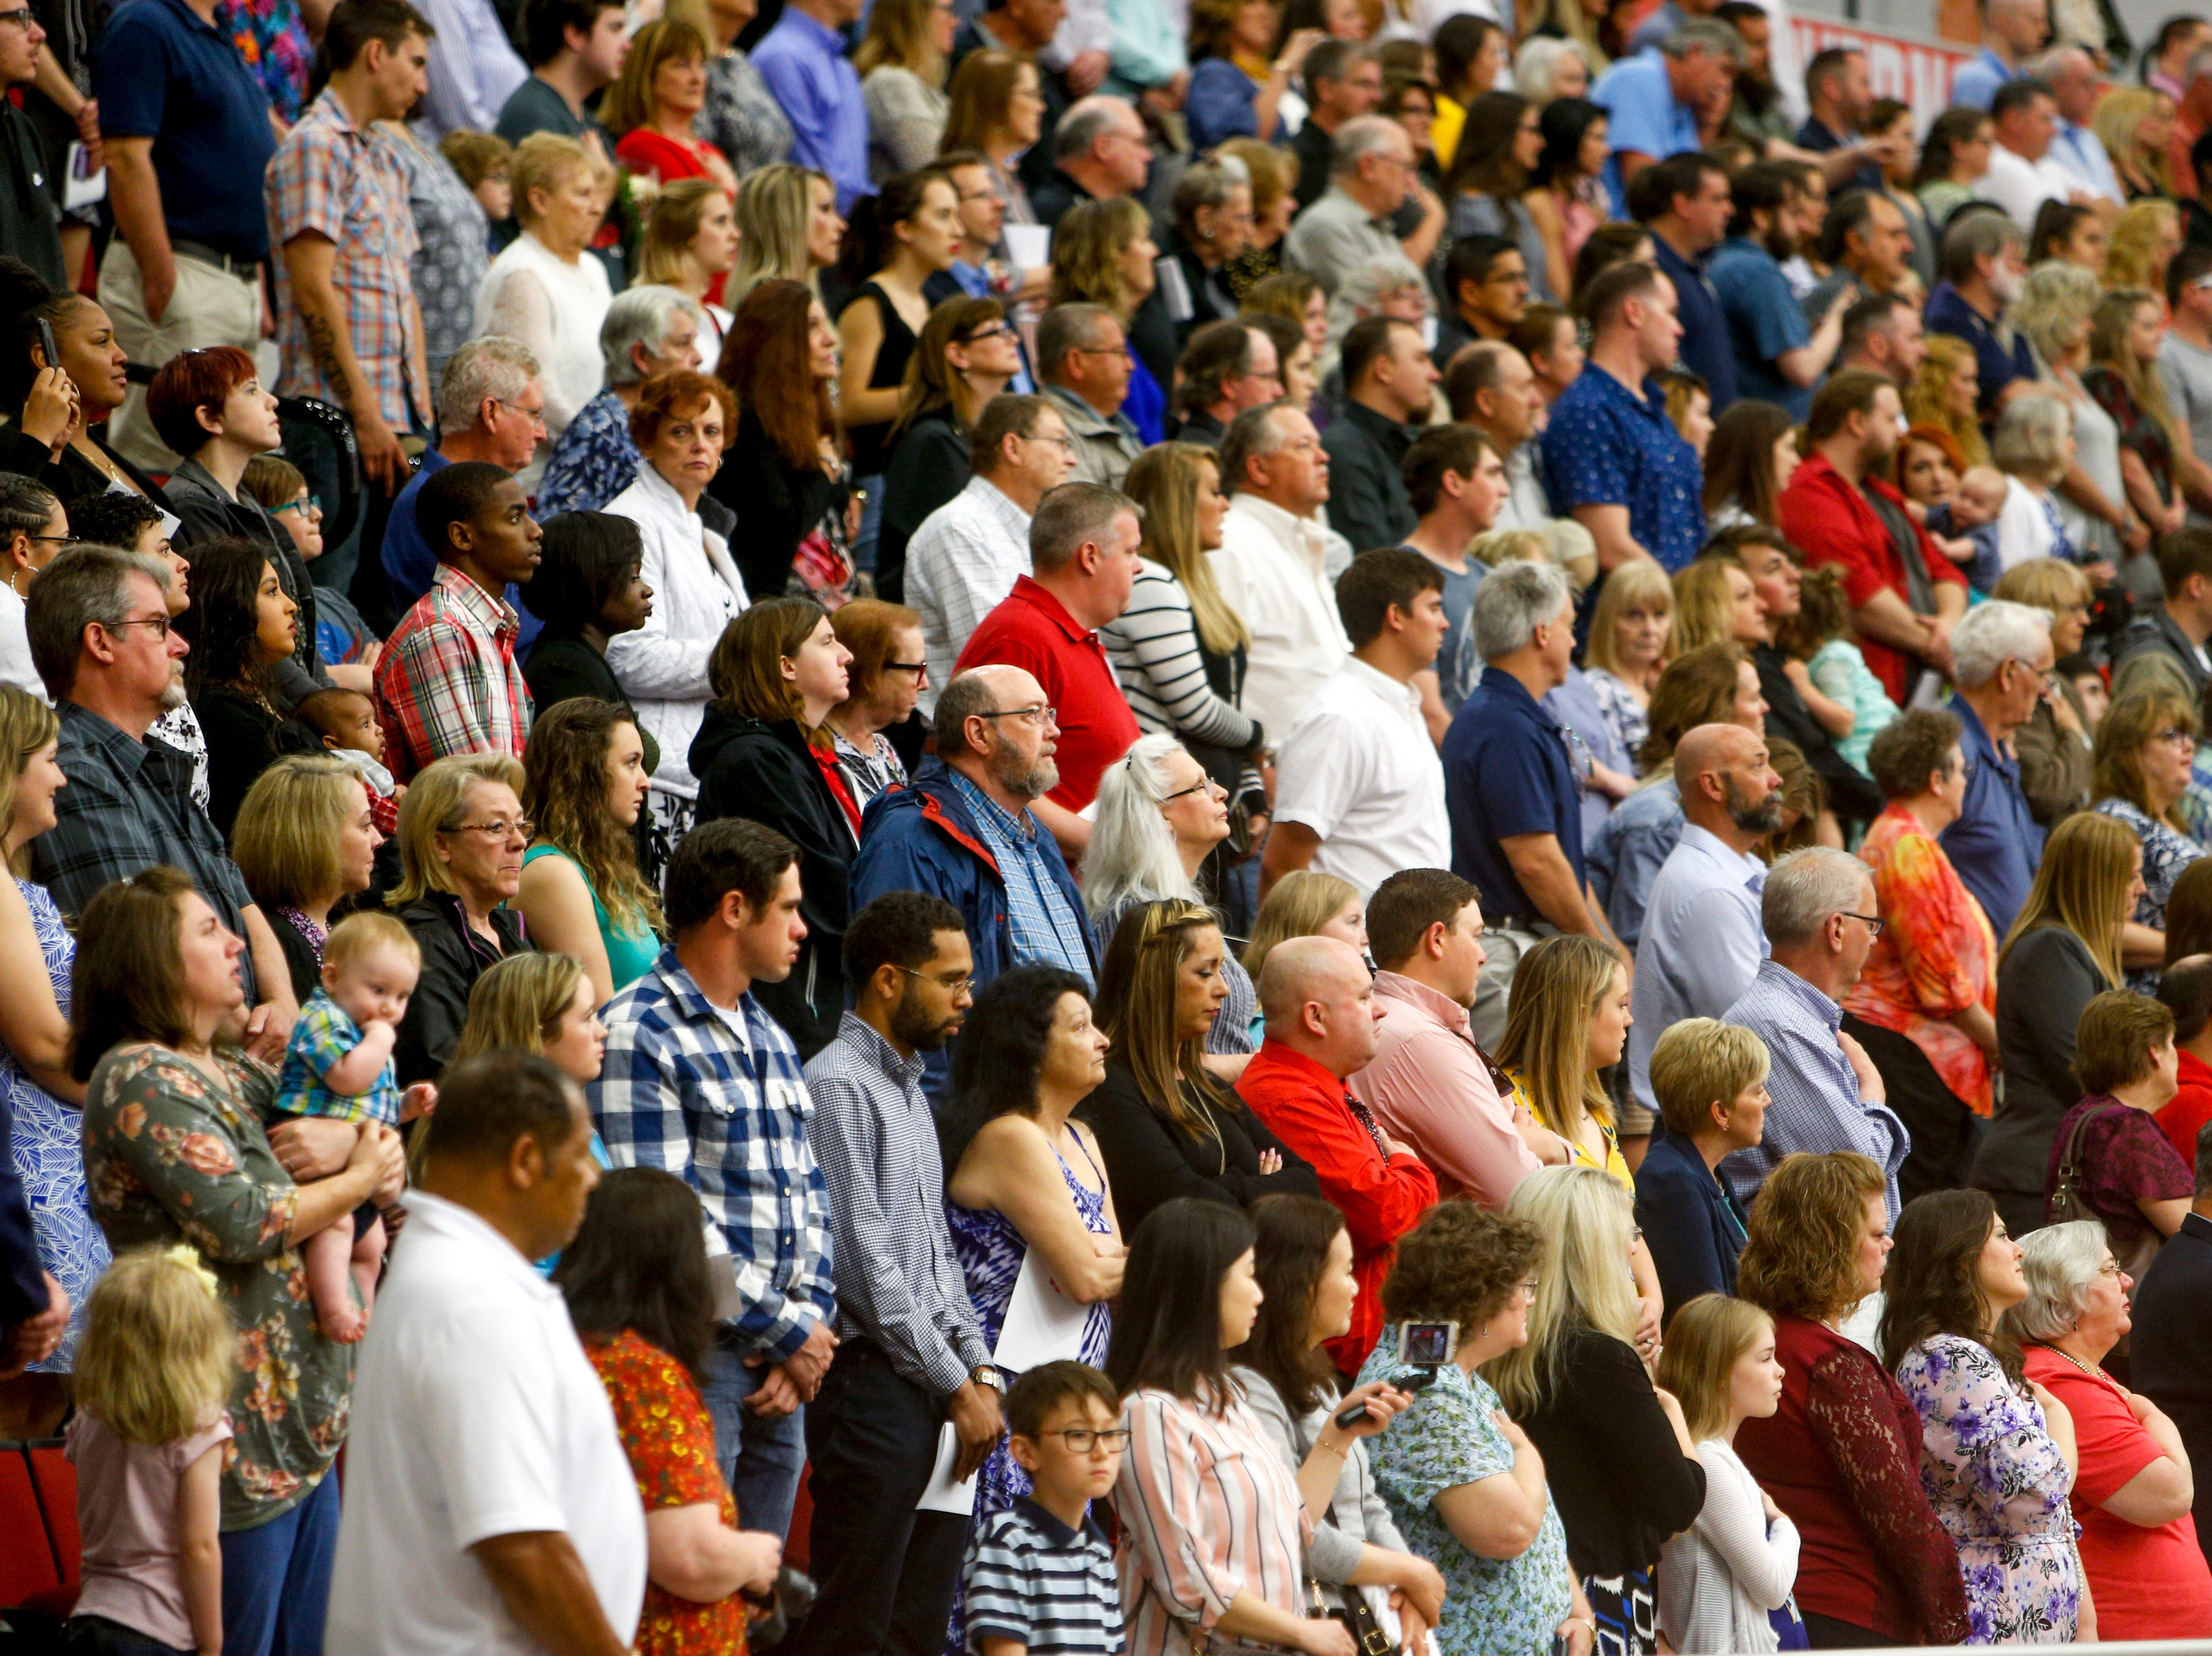 Family and friends stand for the national anthem at the Austin Peay spring commencement ceremony 2019 for College of Business and College of STEM at Winfield Dunn Center in Clarksville, Tenn., on Friday, May 3, 2019.